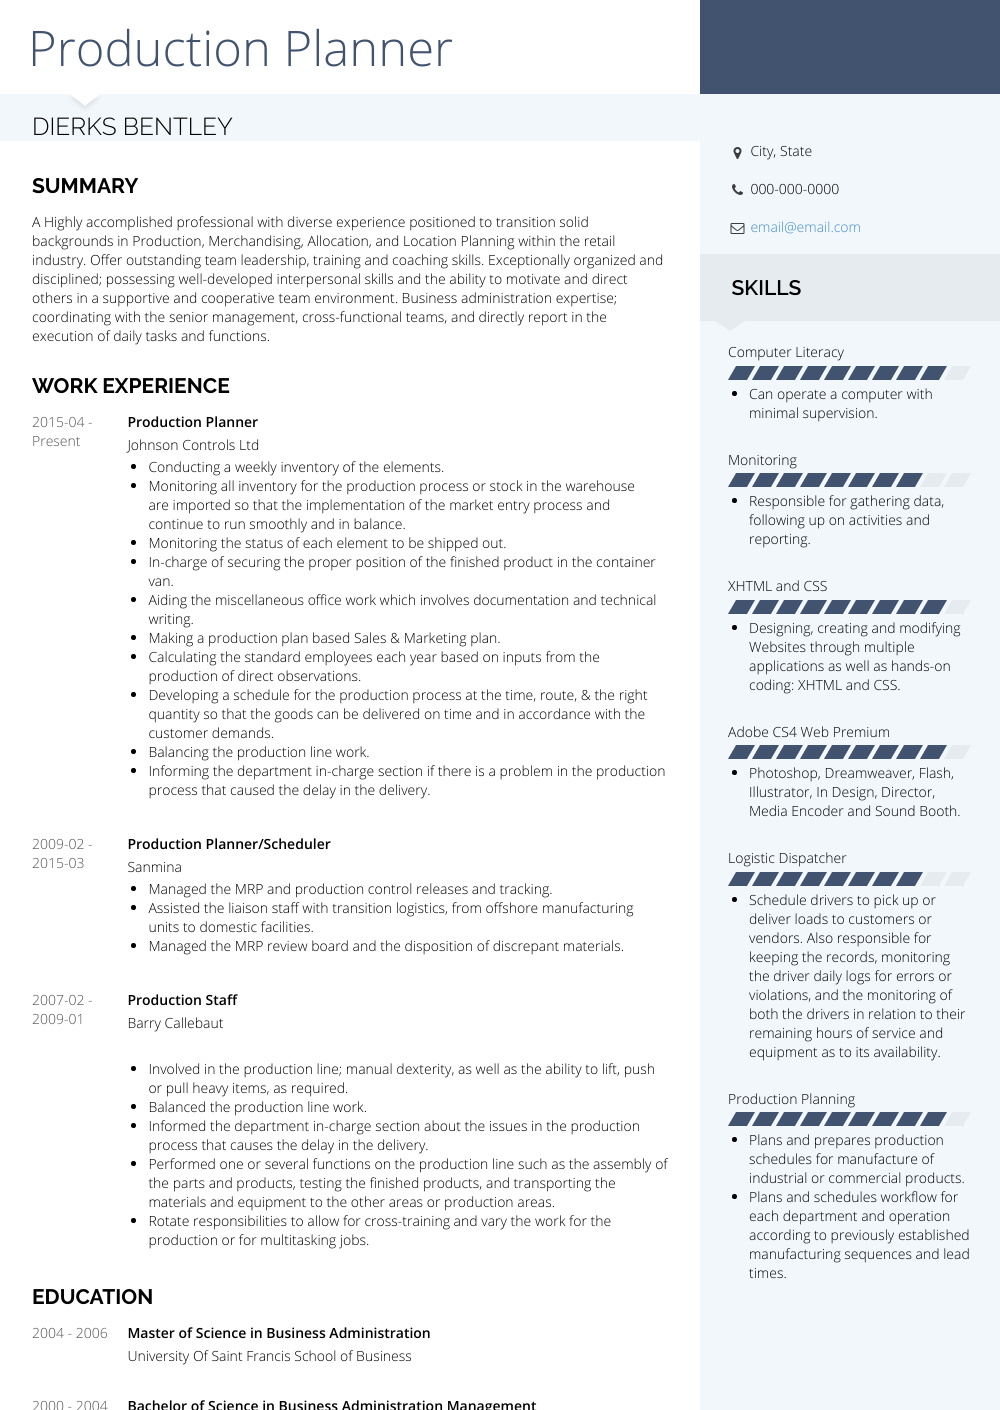 Production Planner Resume Sample and Template